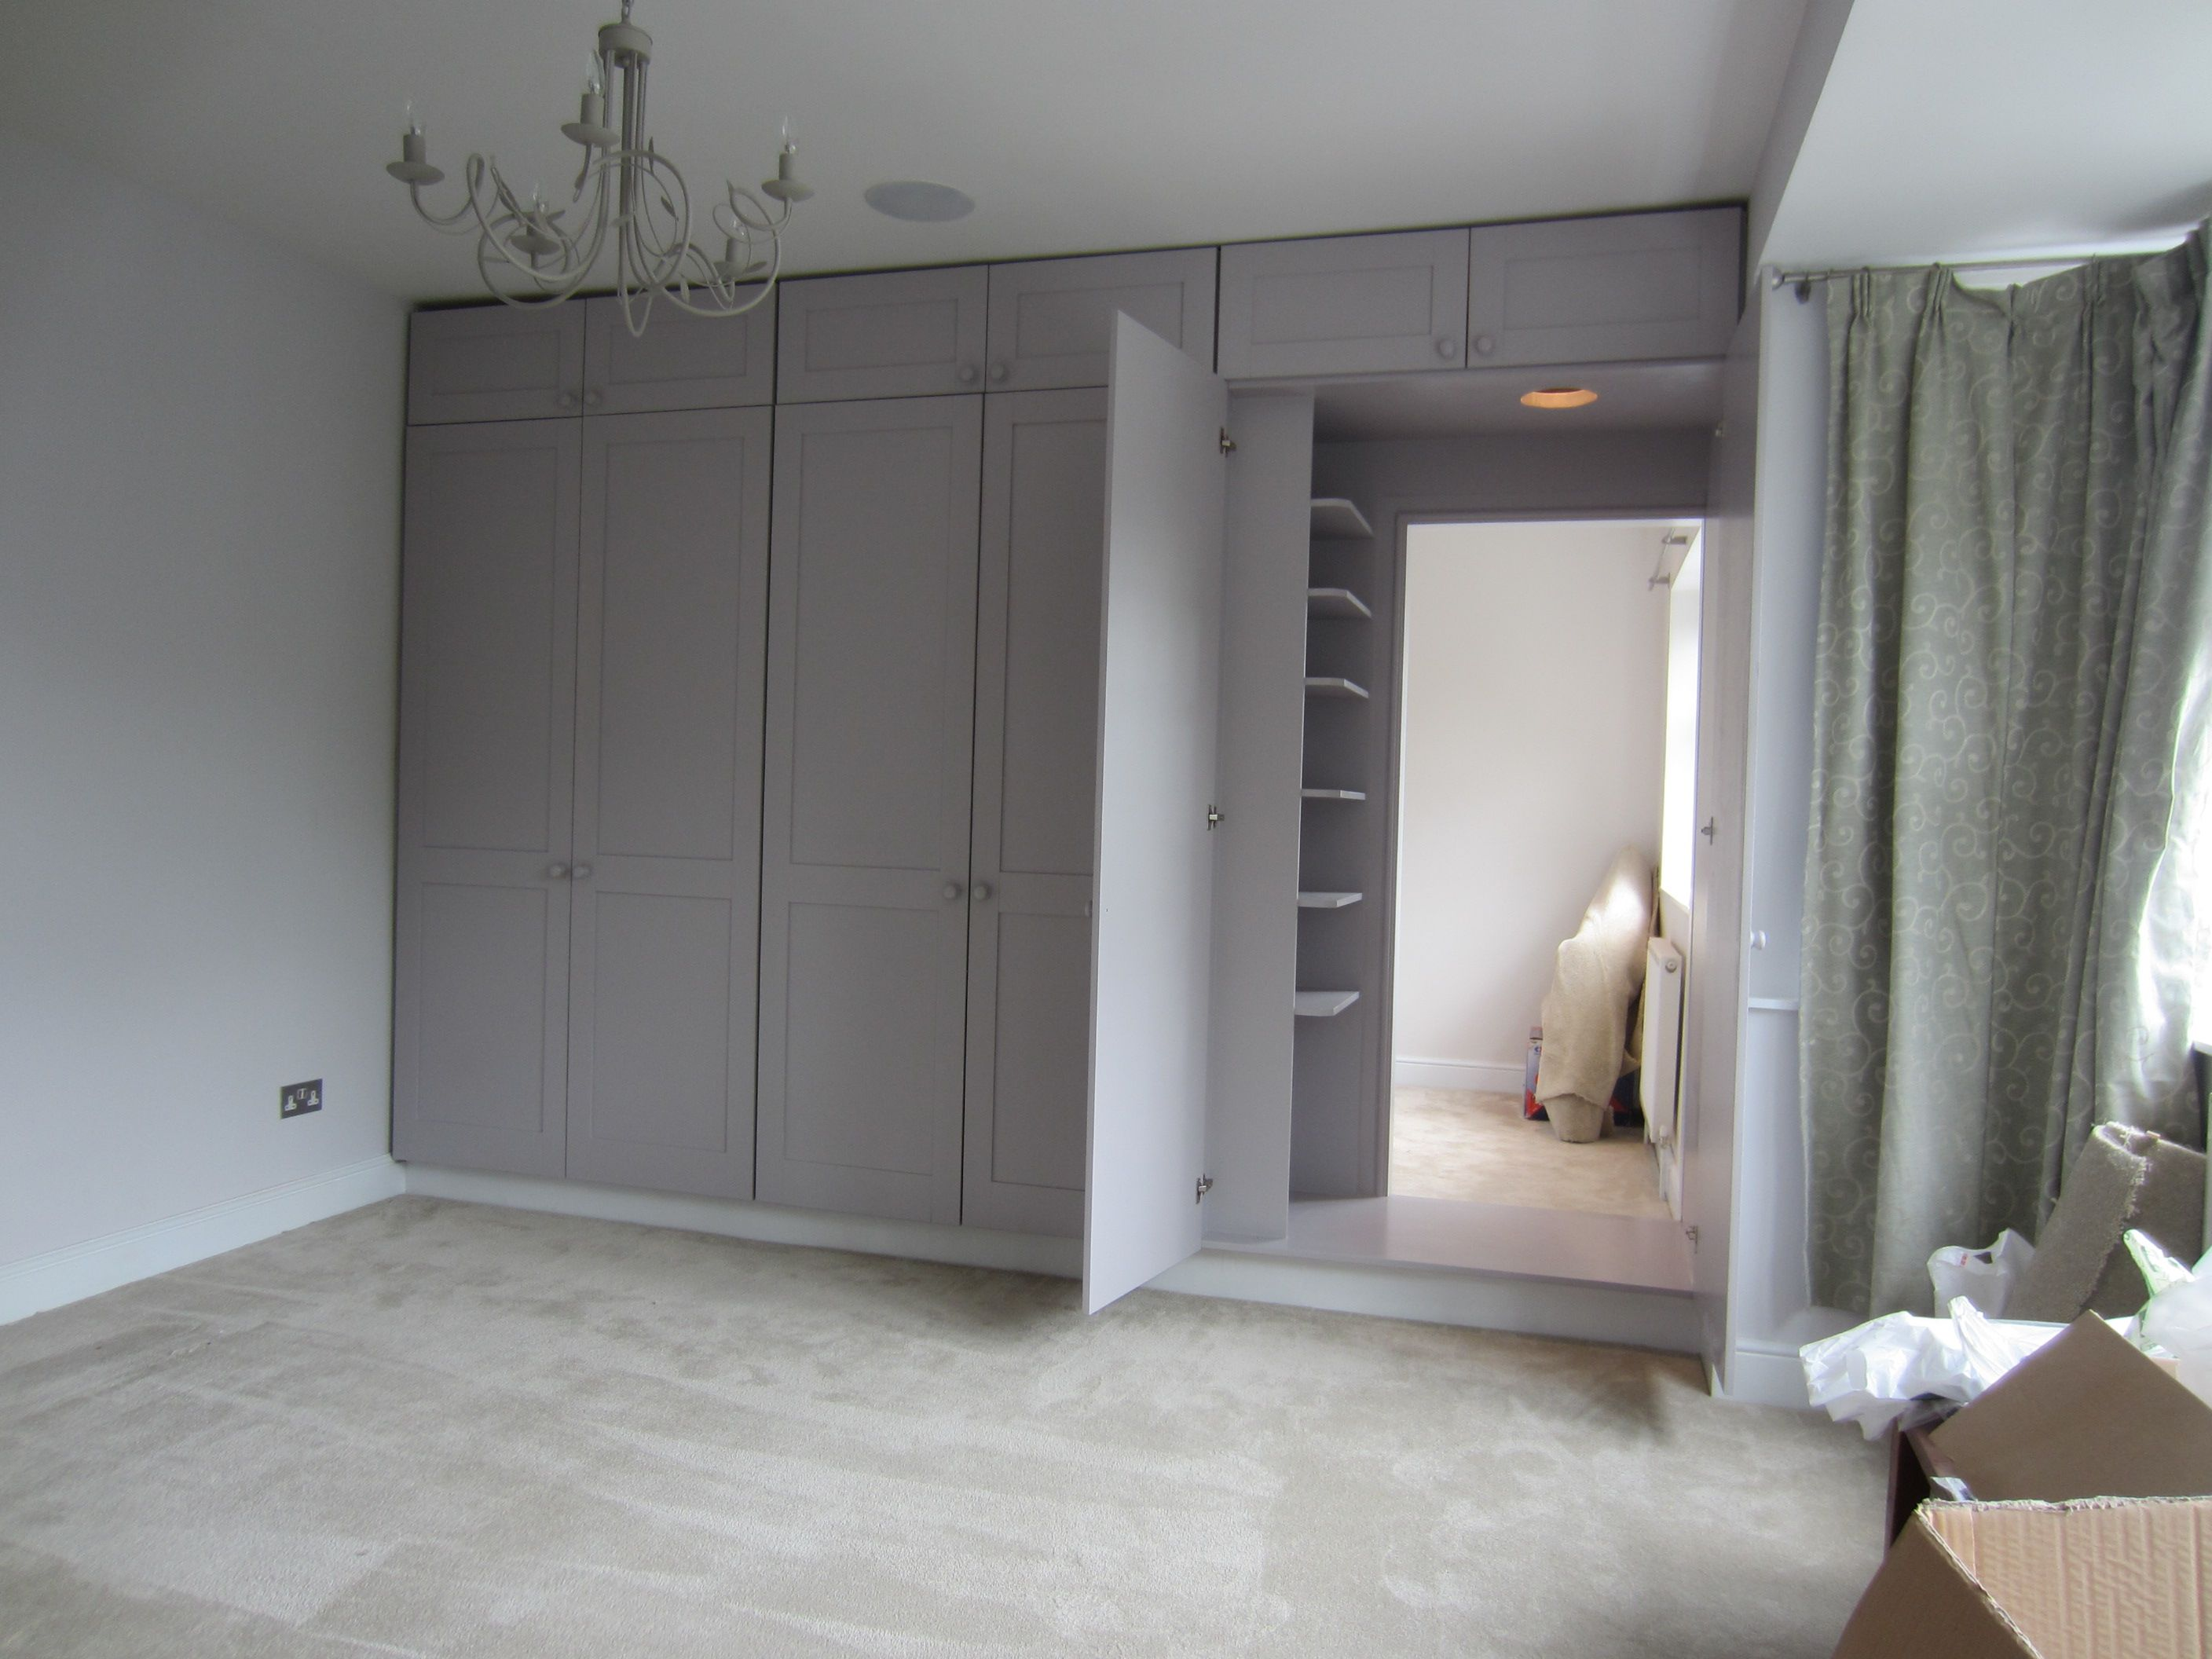 closet systems space everyday with denver colorado closets design luxury a custom oh experience by solutions